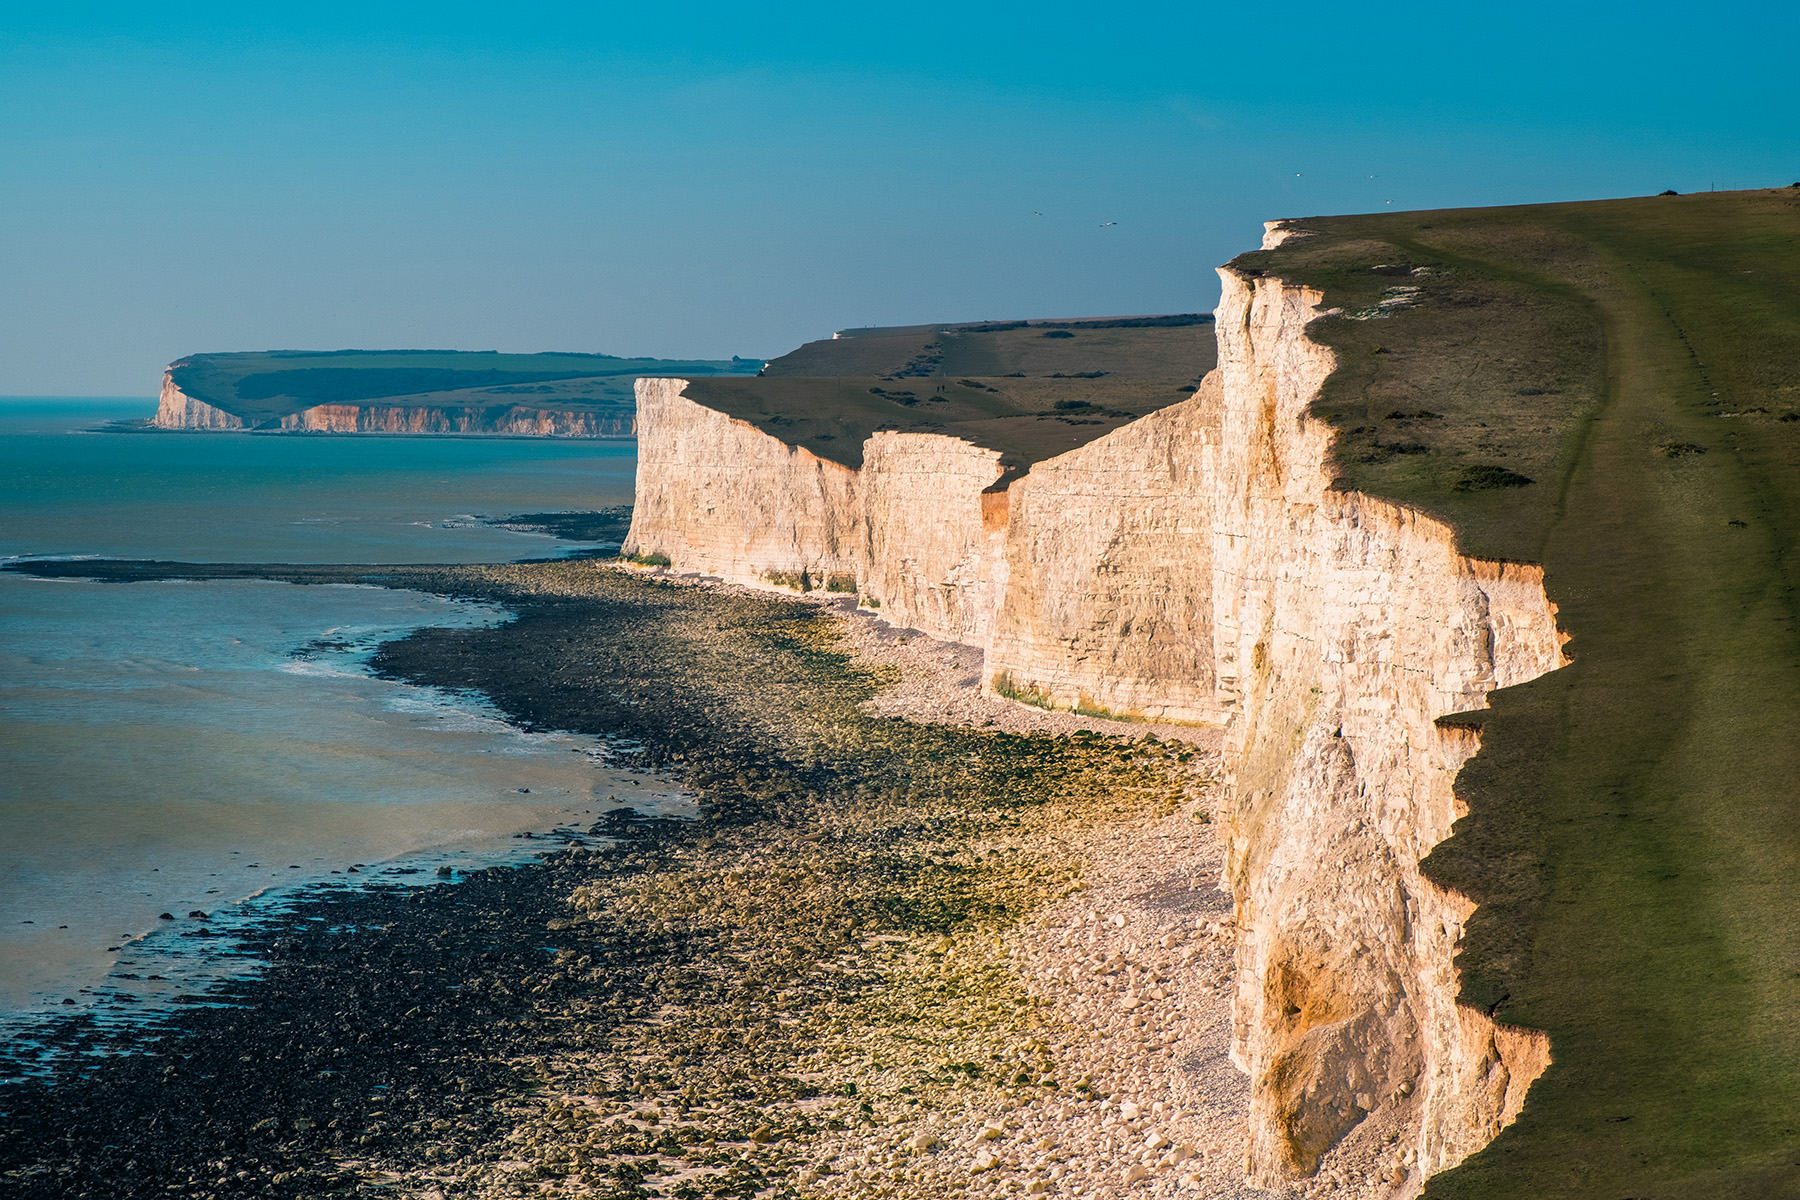 Seven Sisters cliffs, Seaford, East Sussex